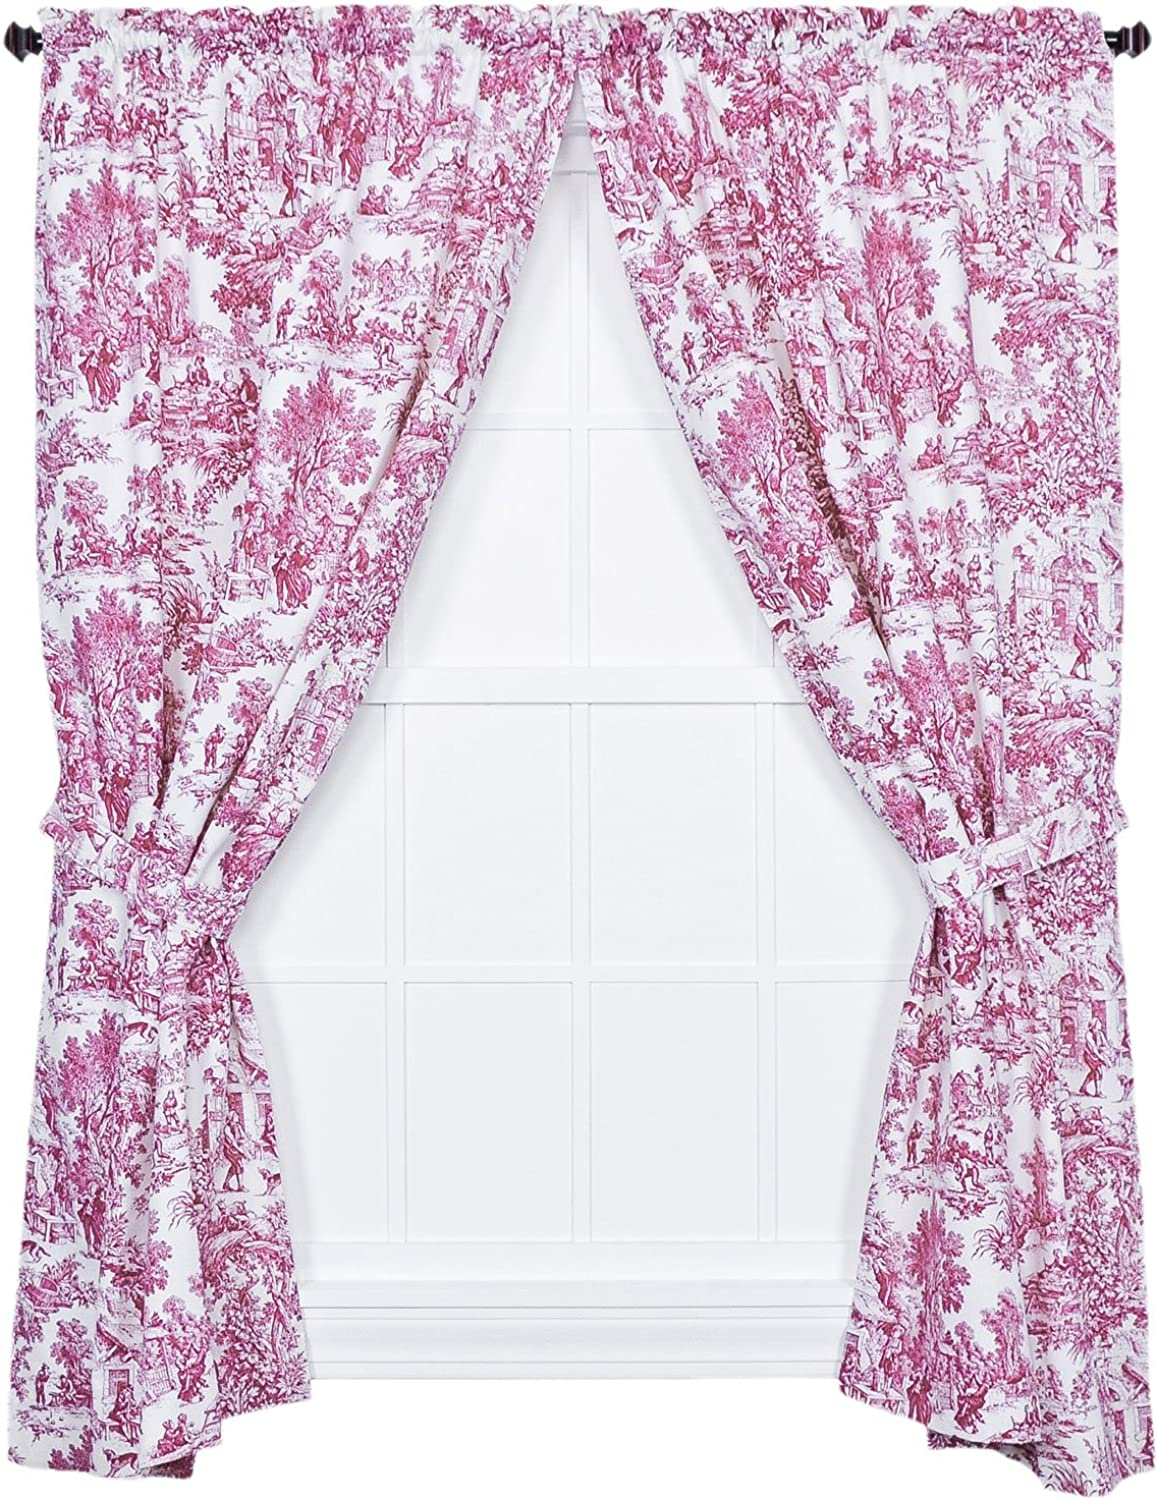 Ellis Curtain Victoria Park Toile 68-Inch-by-63 Inch Tailored Panel Pair with Tiebacks, Red